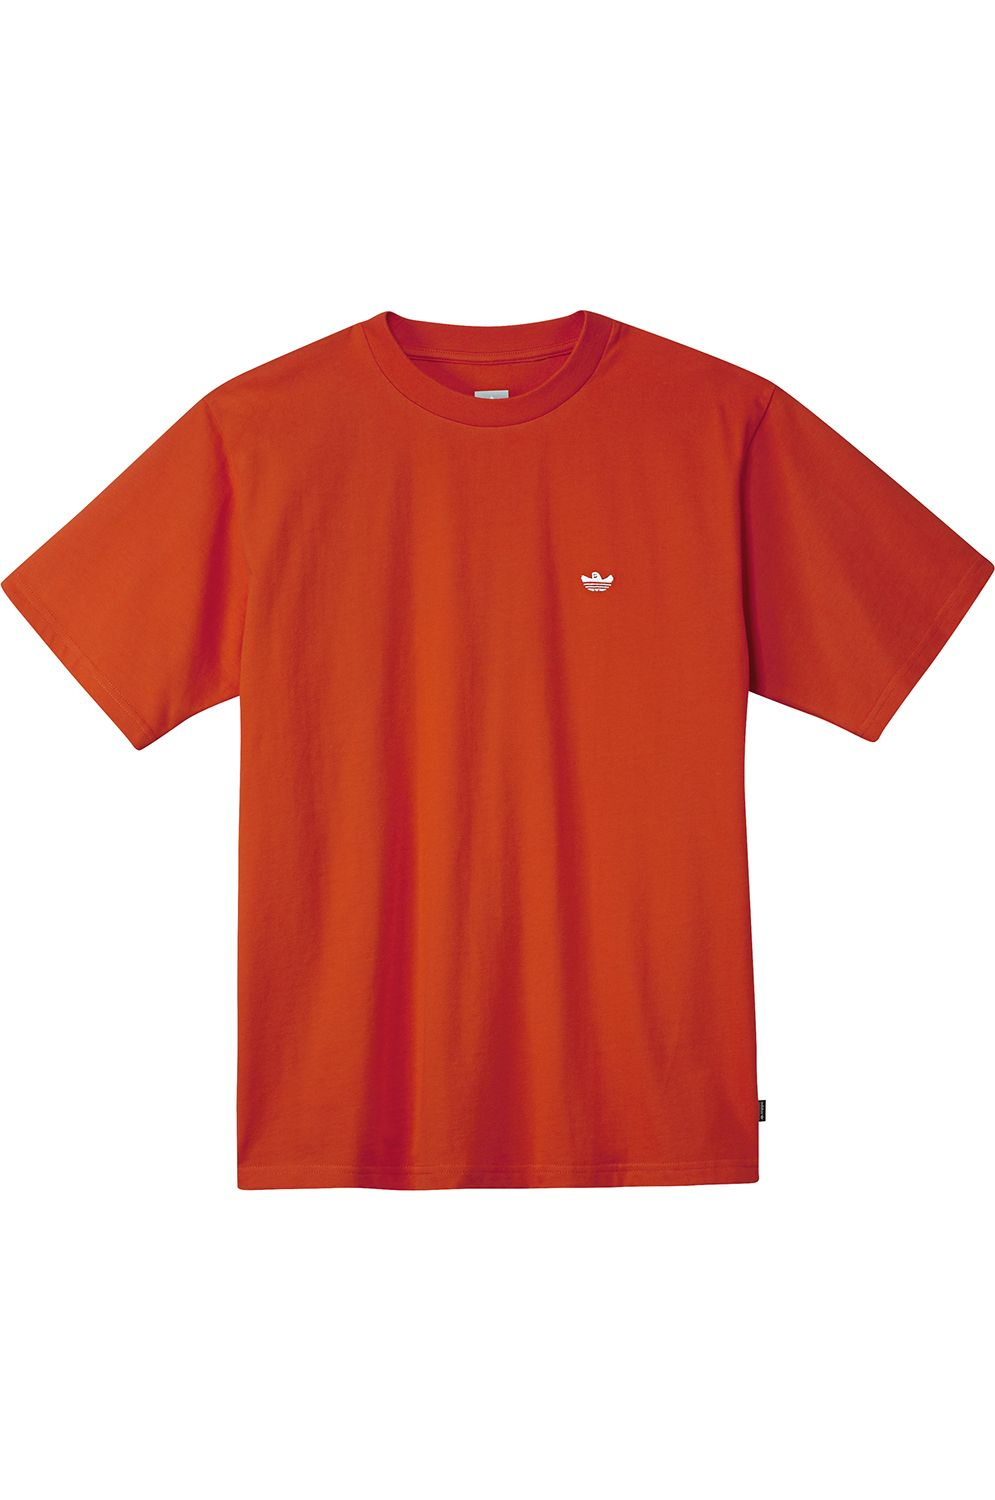 T-Shirt Adidas MINI SHMOO Active Orange/White